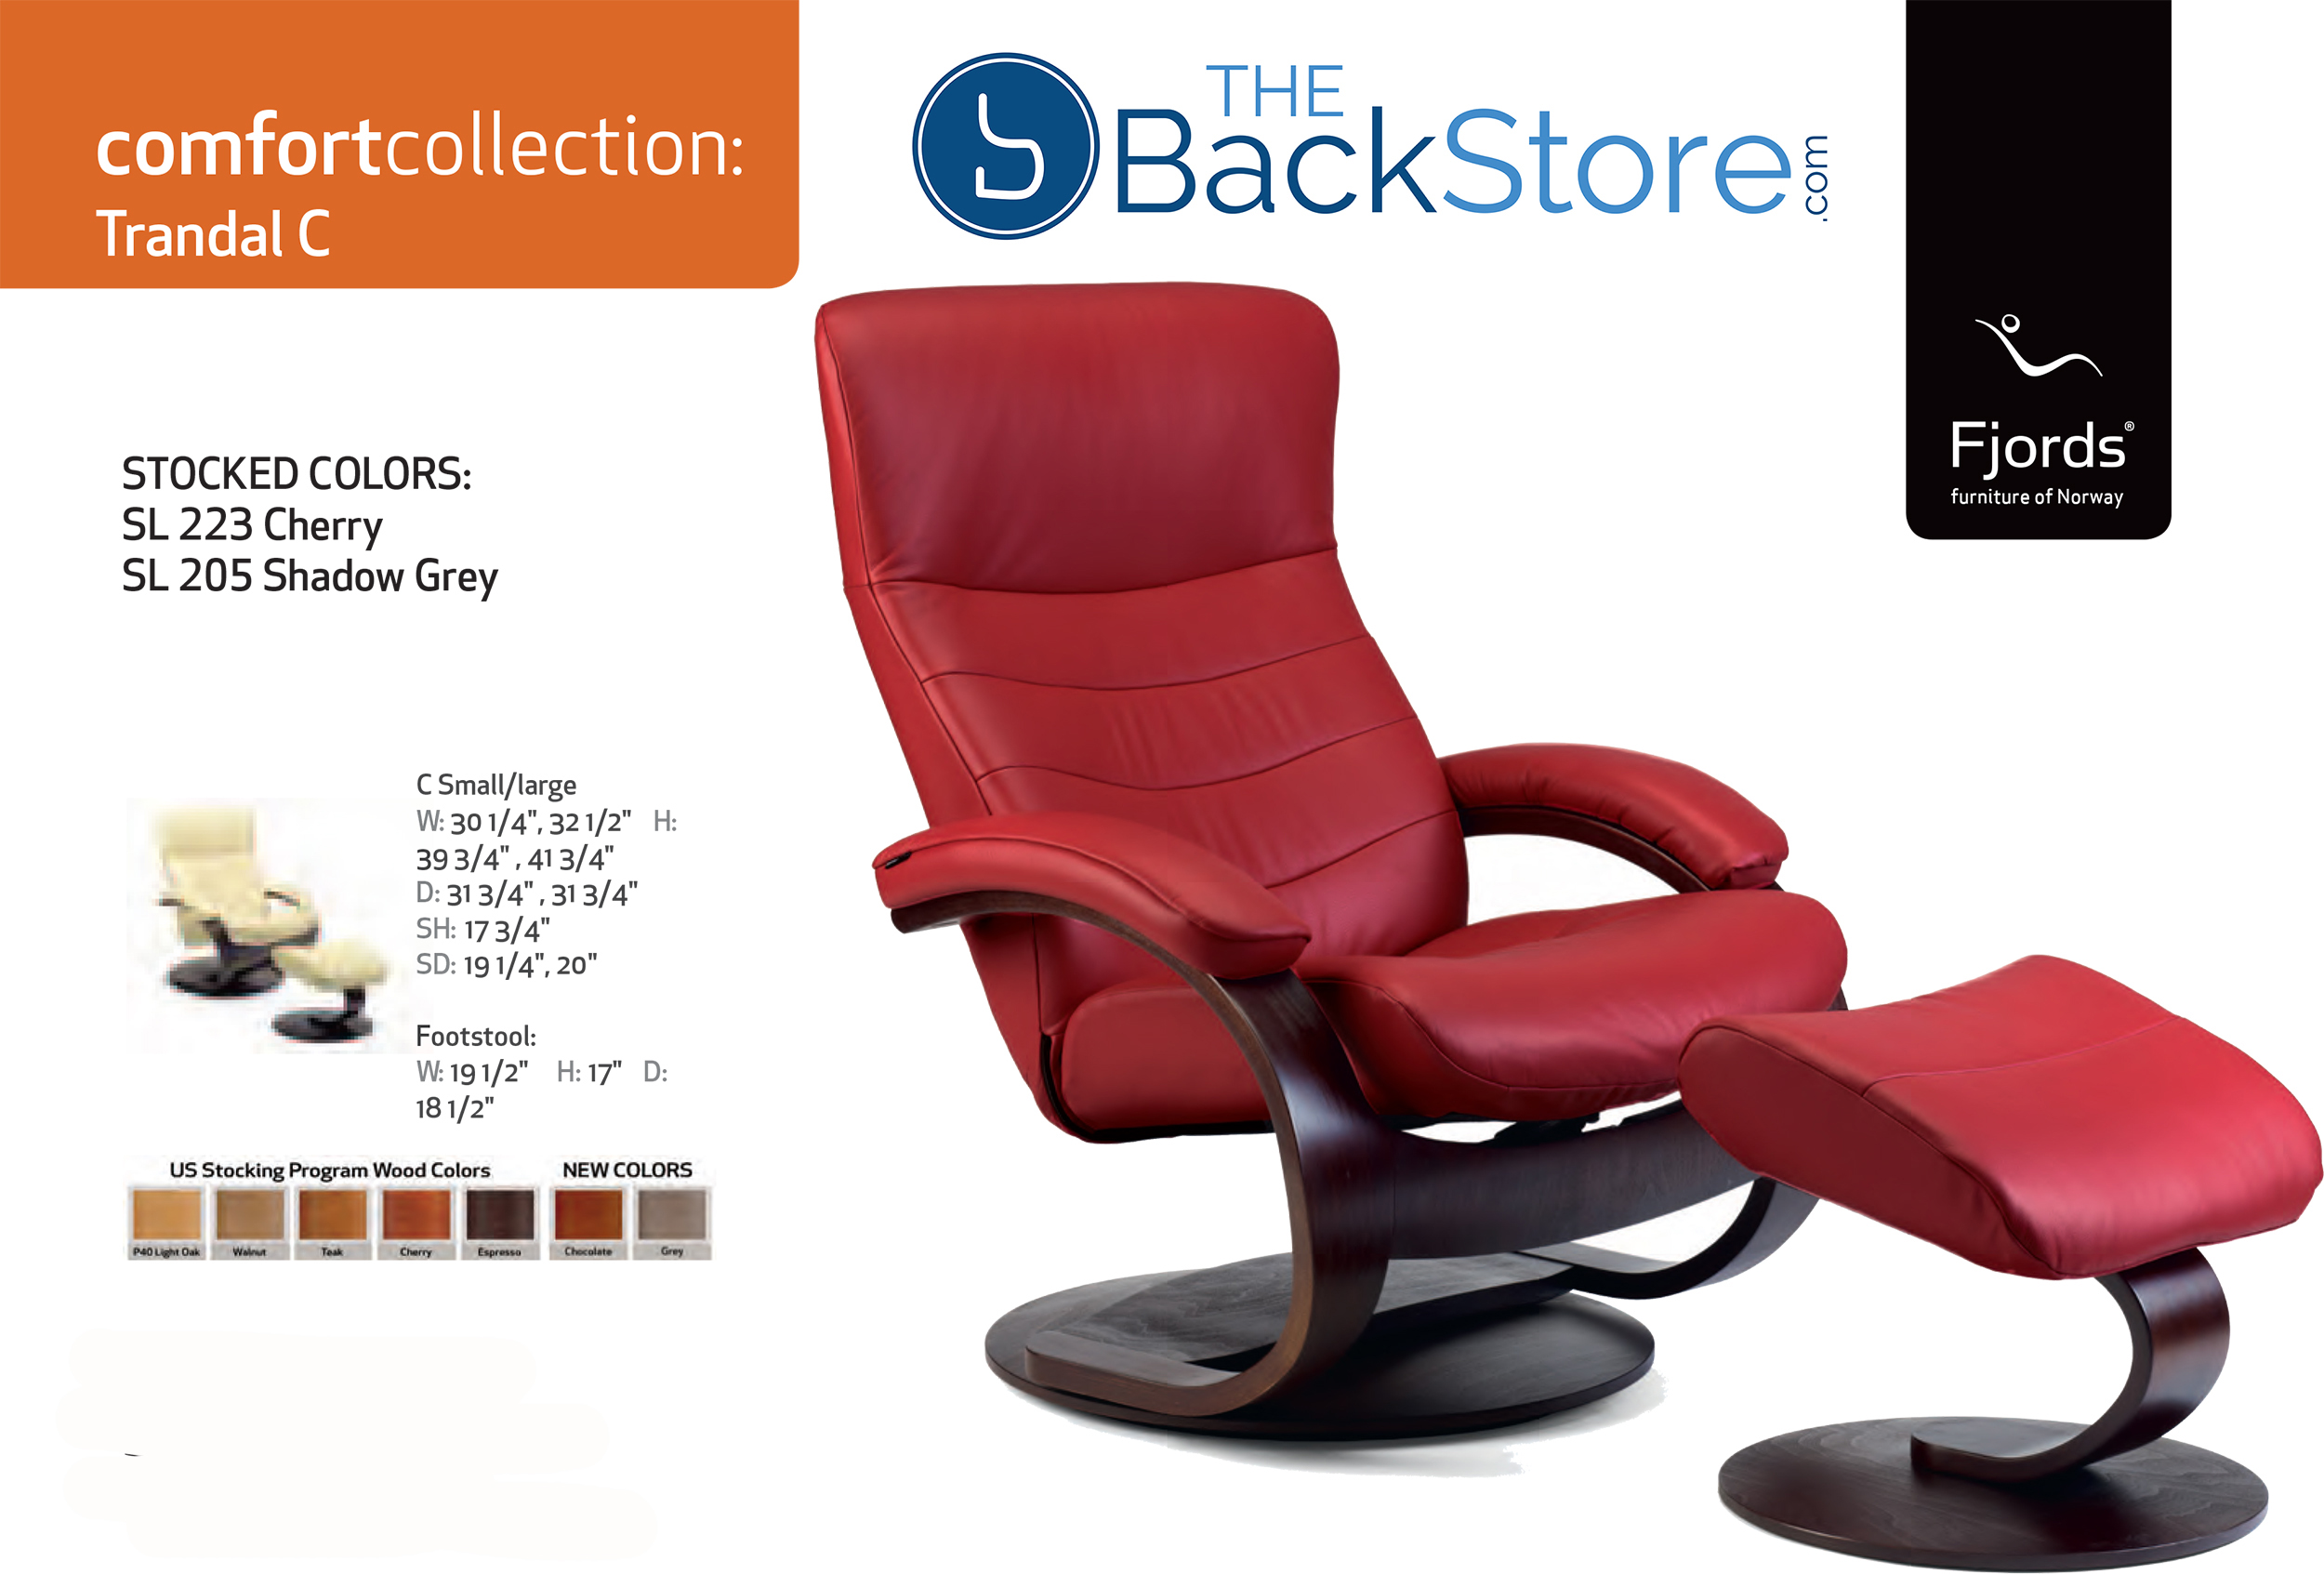 Fjords Trandal Leather Recliner Chair and Ottoman  sc 1 st  Vitalityweb.com & Fjords Trandal Ergonomic Leather C Frame Recliner Chair + Ottoman ... islam-shia.org